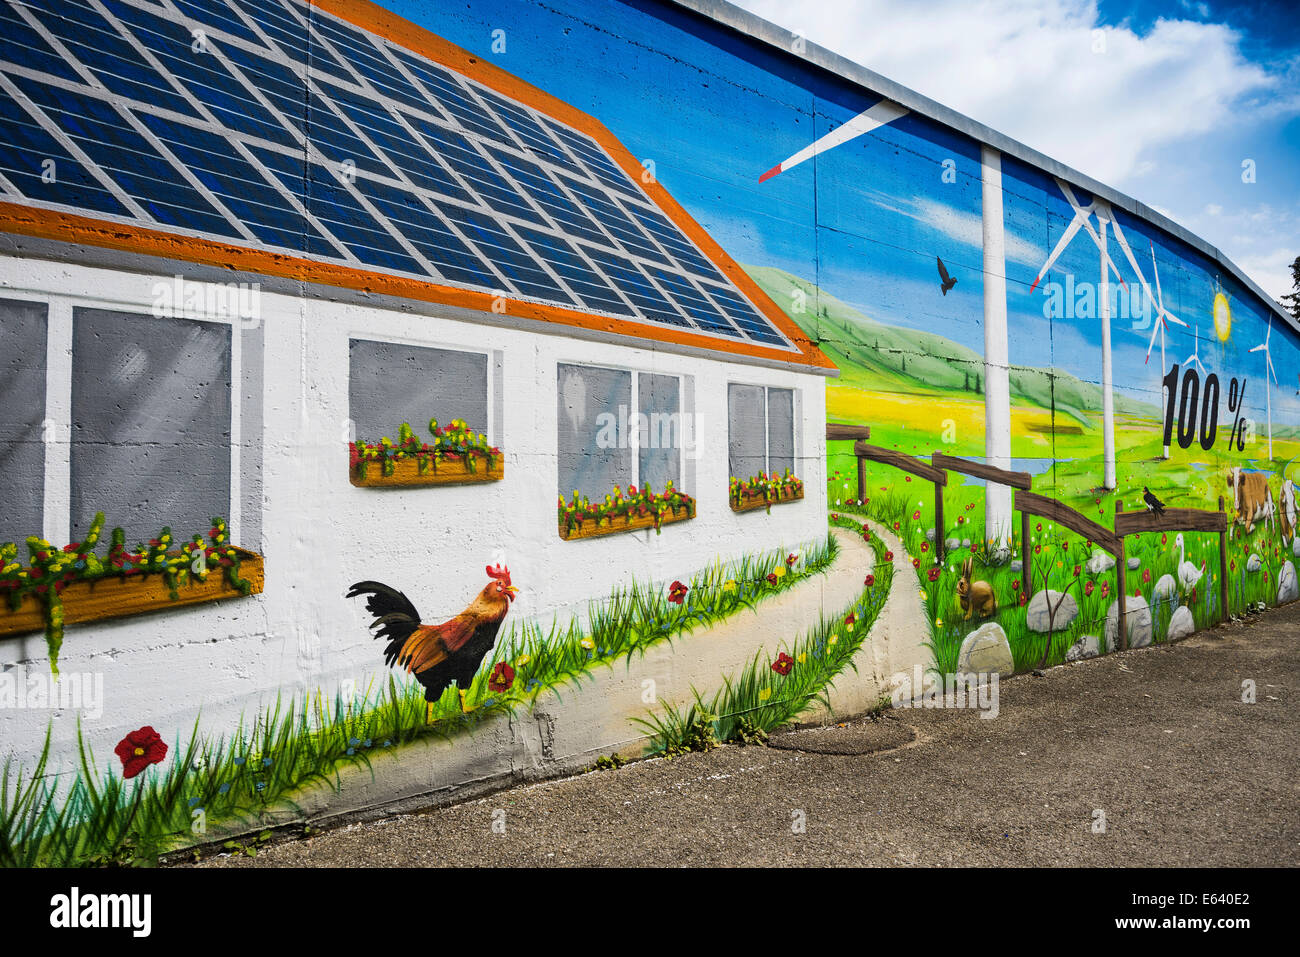 Wall of a house painted with a renewable energy theme, Tiengen, Waldshut-Tiengen, Baden-Württemberg, Germany - Stock Image